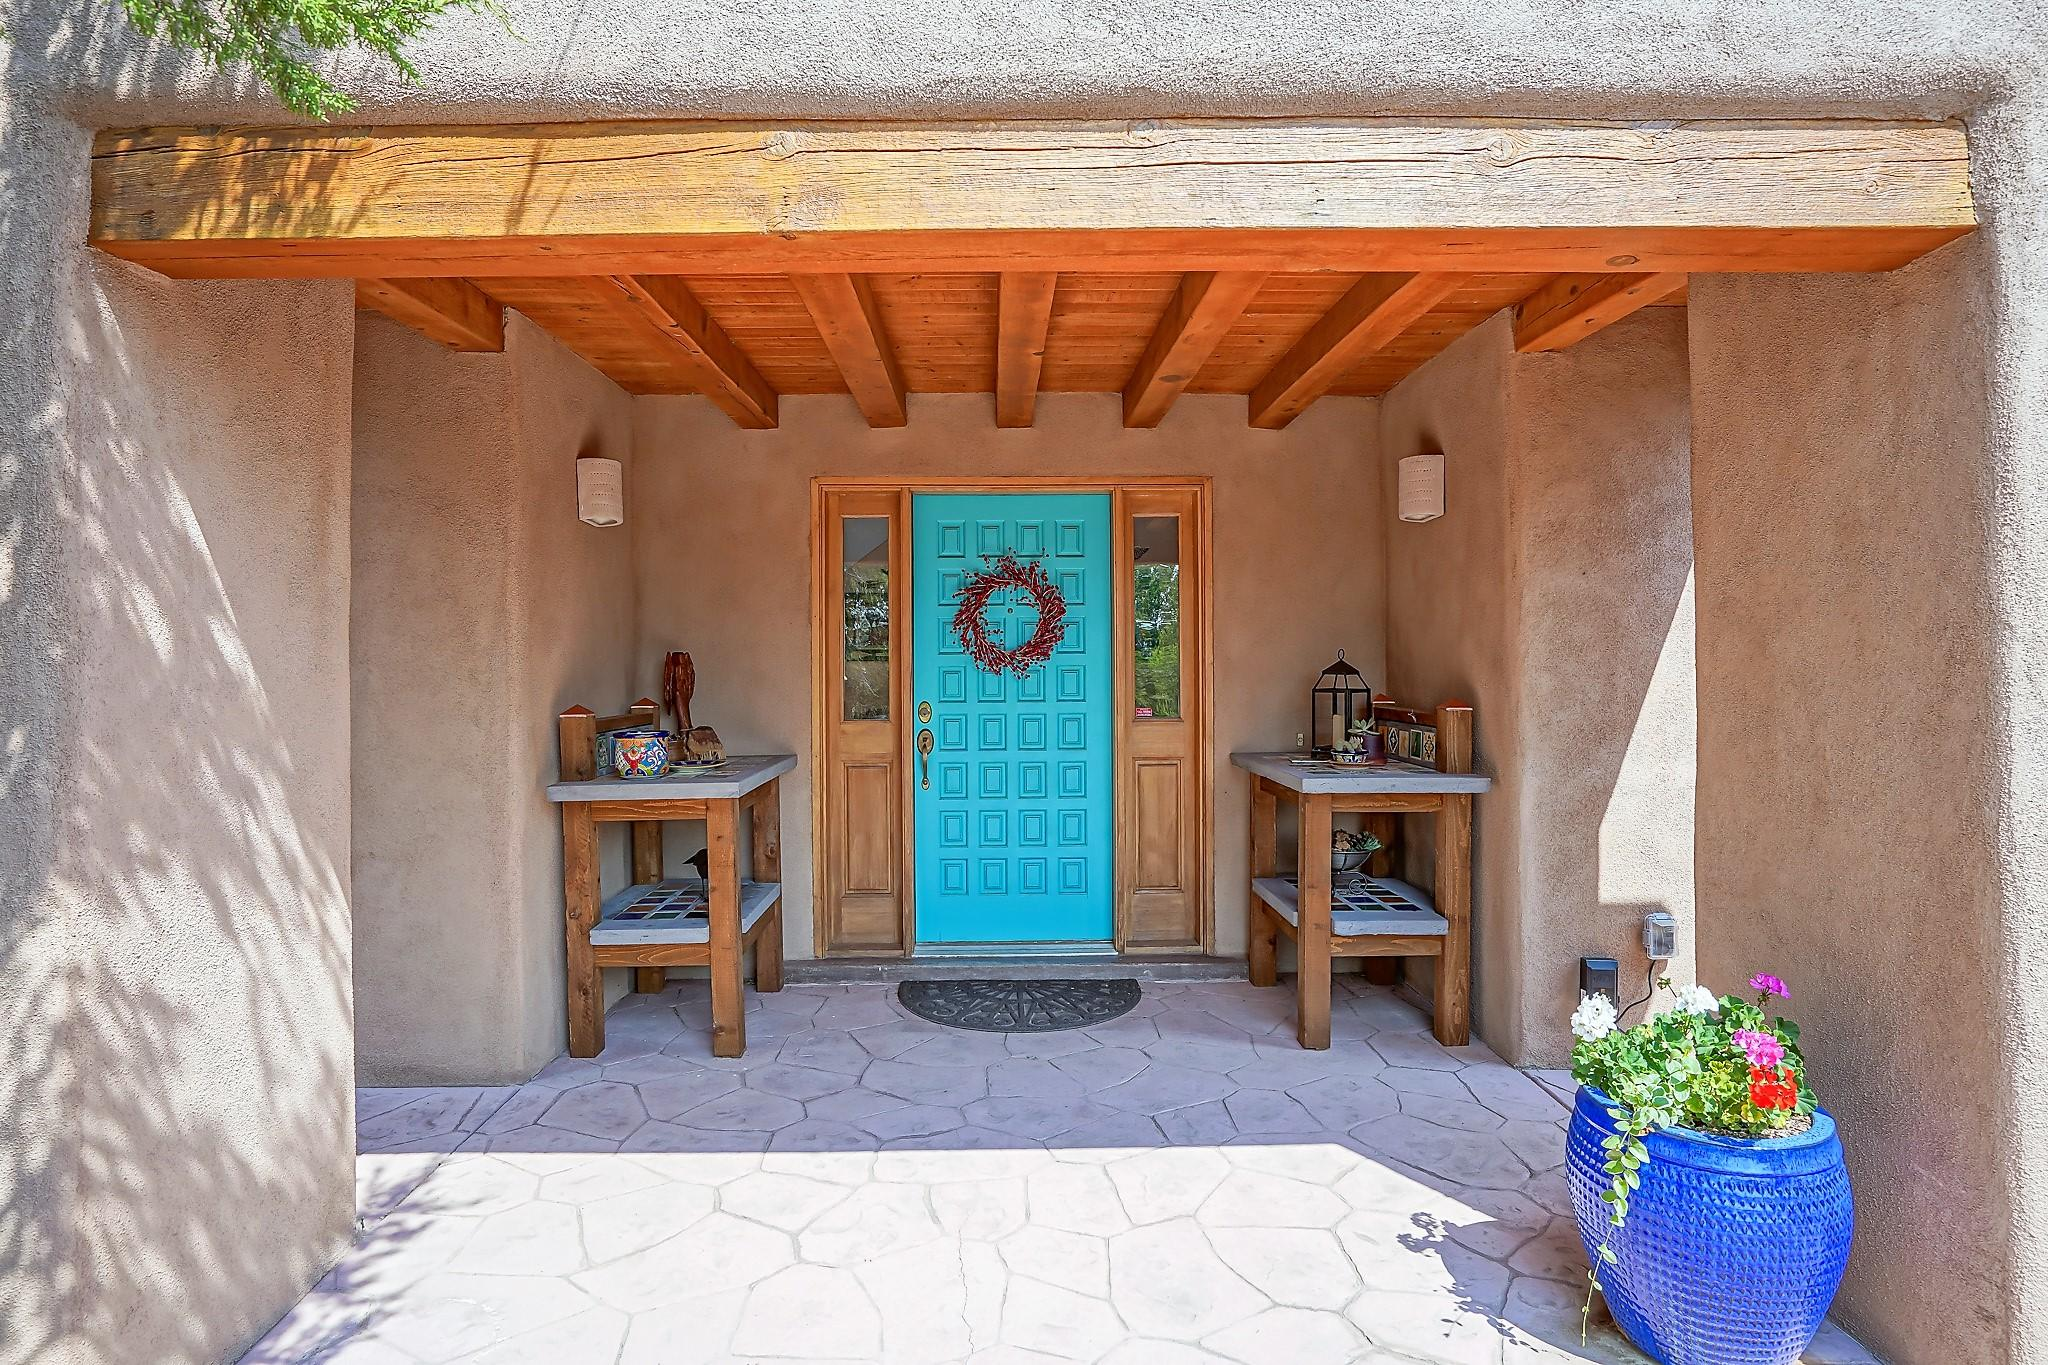 This is a custom southwest style home located in prestigious Paa-Ko mountain community on a one acre lot. This home is a member of the recreation amenity which includes swimming pool, tennis, and bocce courts.  There is a nearby gymnasium run by the county with modest membership fees. Water is supplied by Entranosa Association. Only twenty minutes to Albuquerque, 40 minutes to the airport, and less than one hour from Santa Fe this custom home is the ultimate in affordable luxury. Excellent condition! A must see!